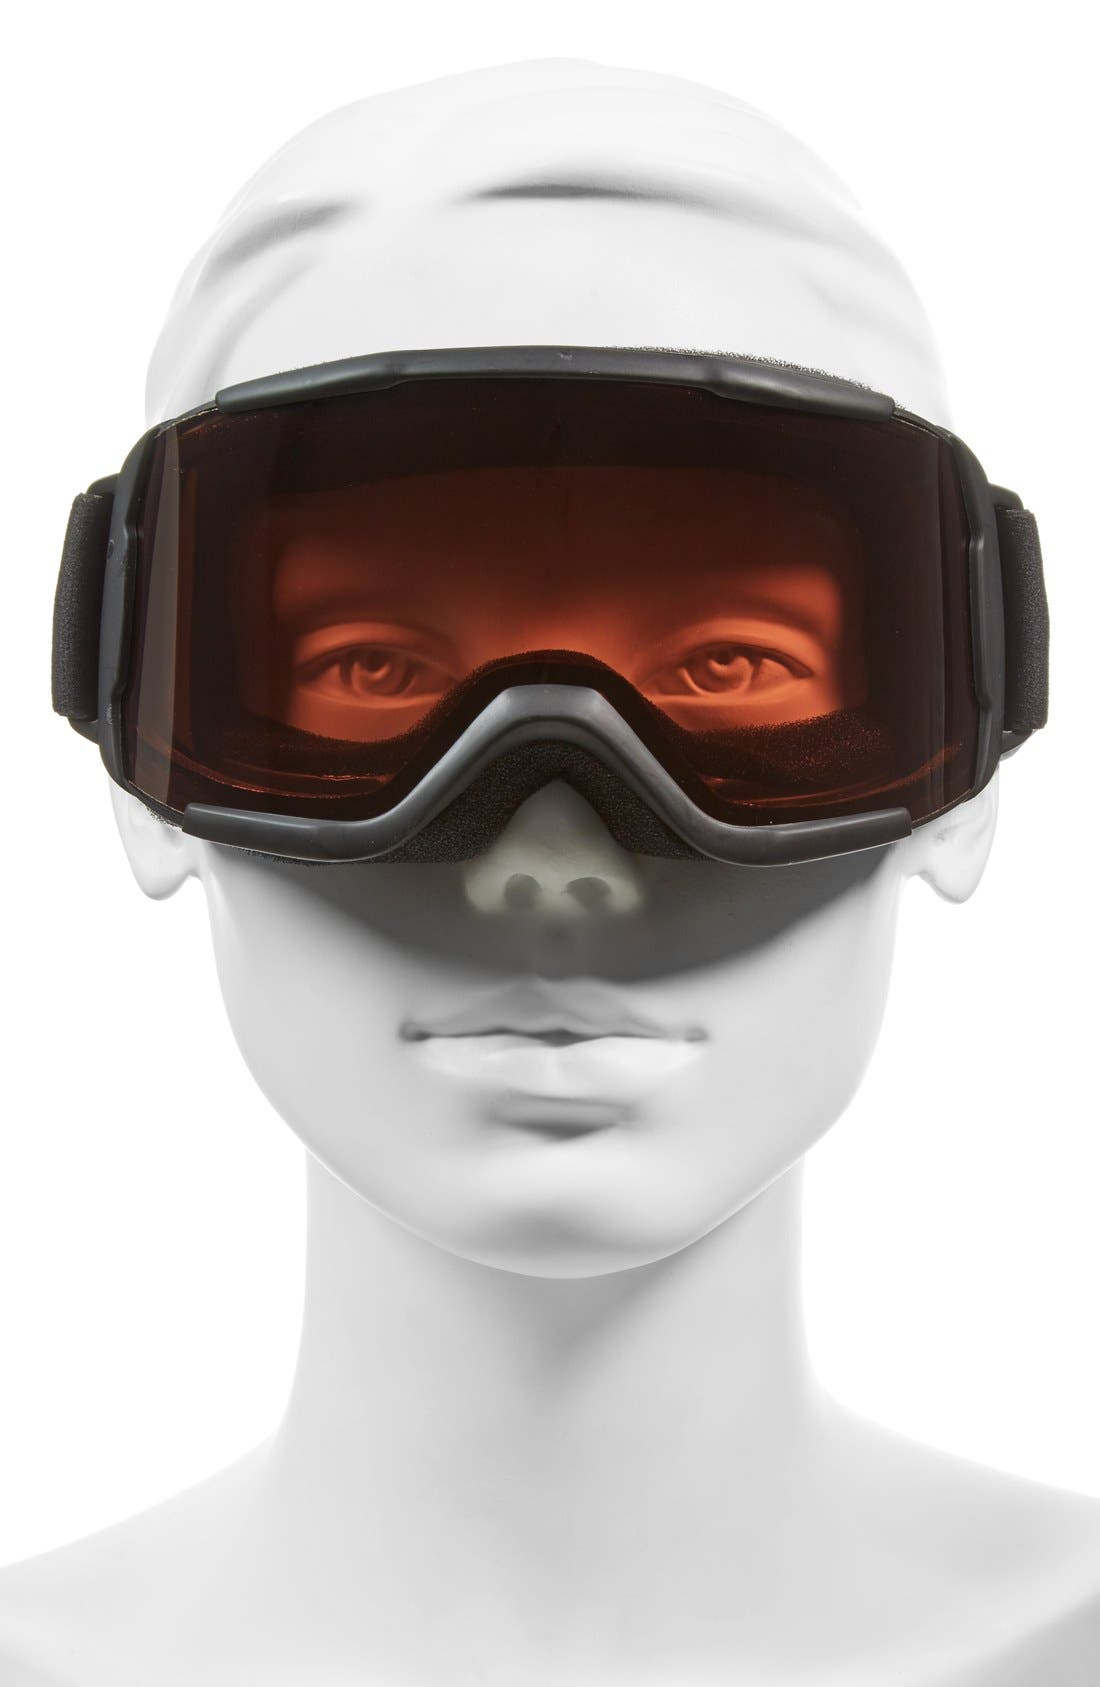 'Daredevil' Snow Goggles,                             Alternate thumbnail 2, color,                             Black/ Rc36